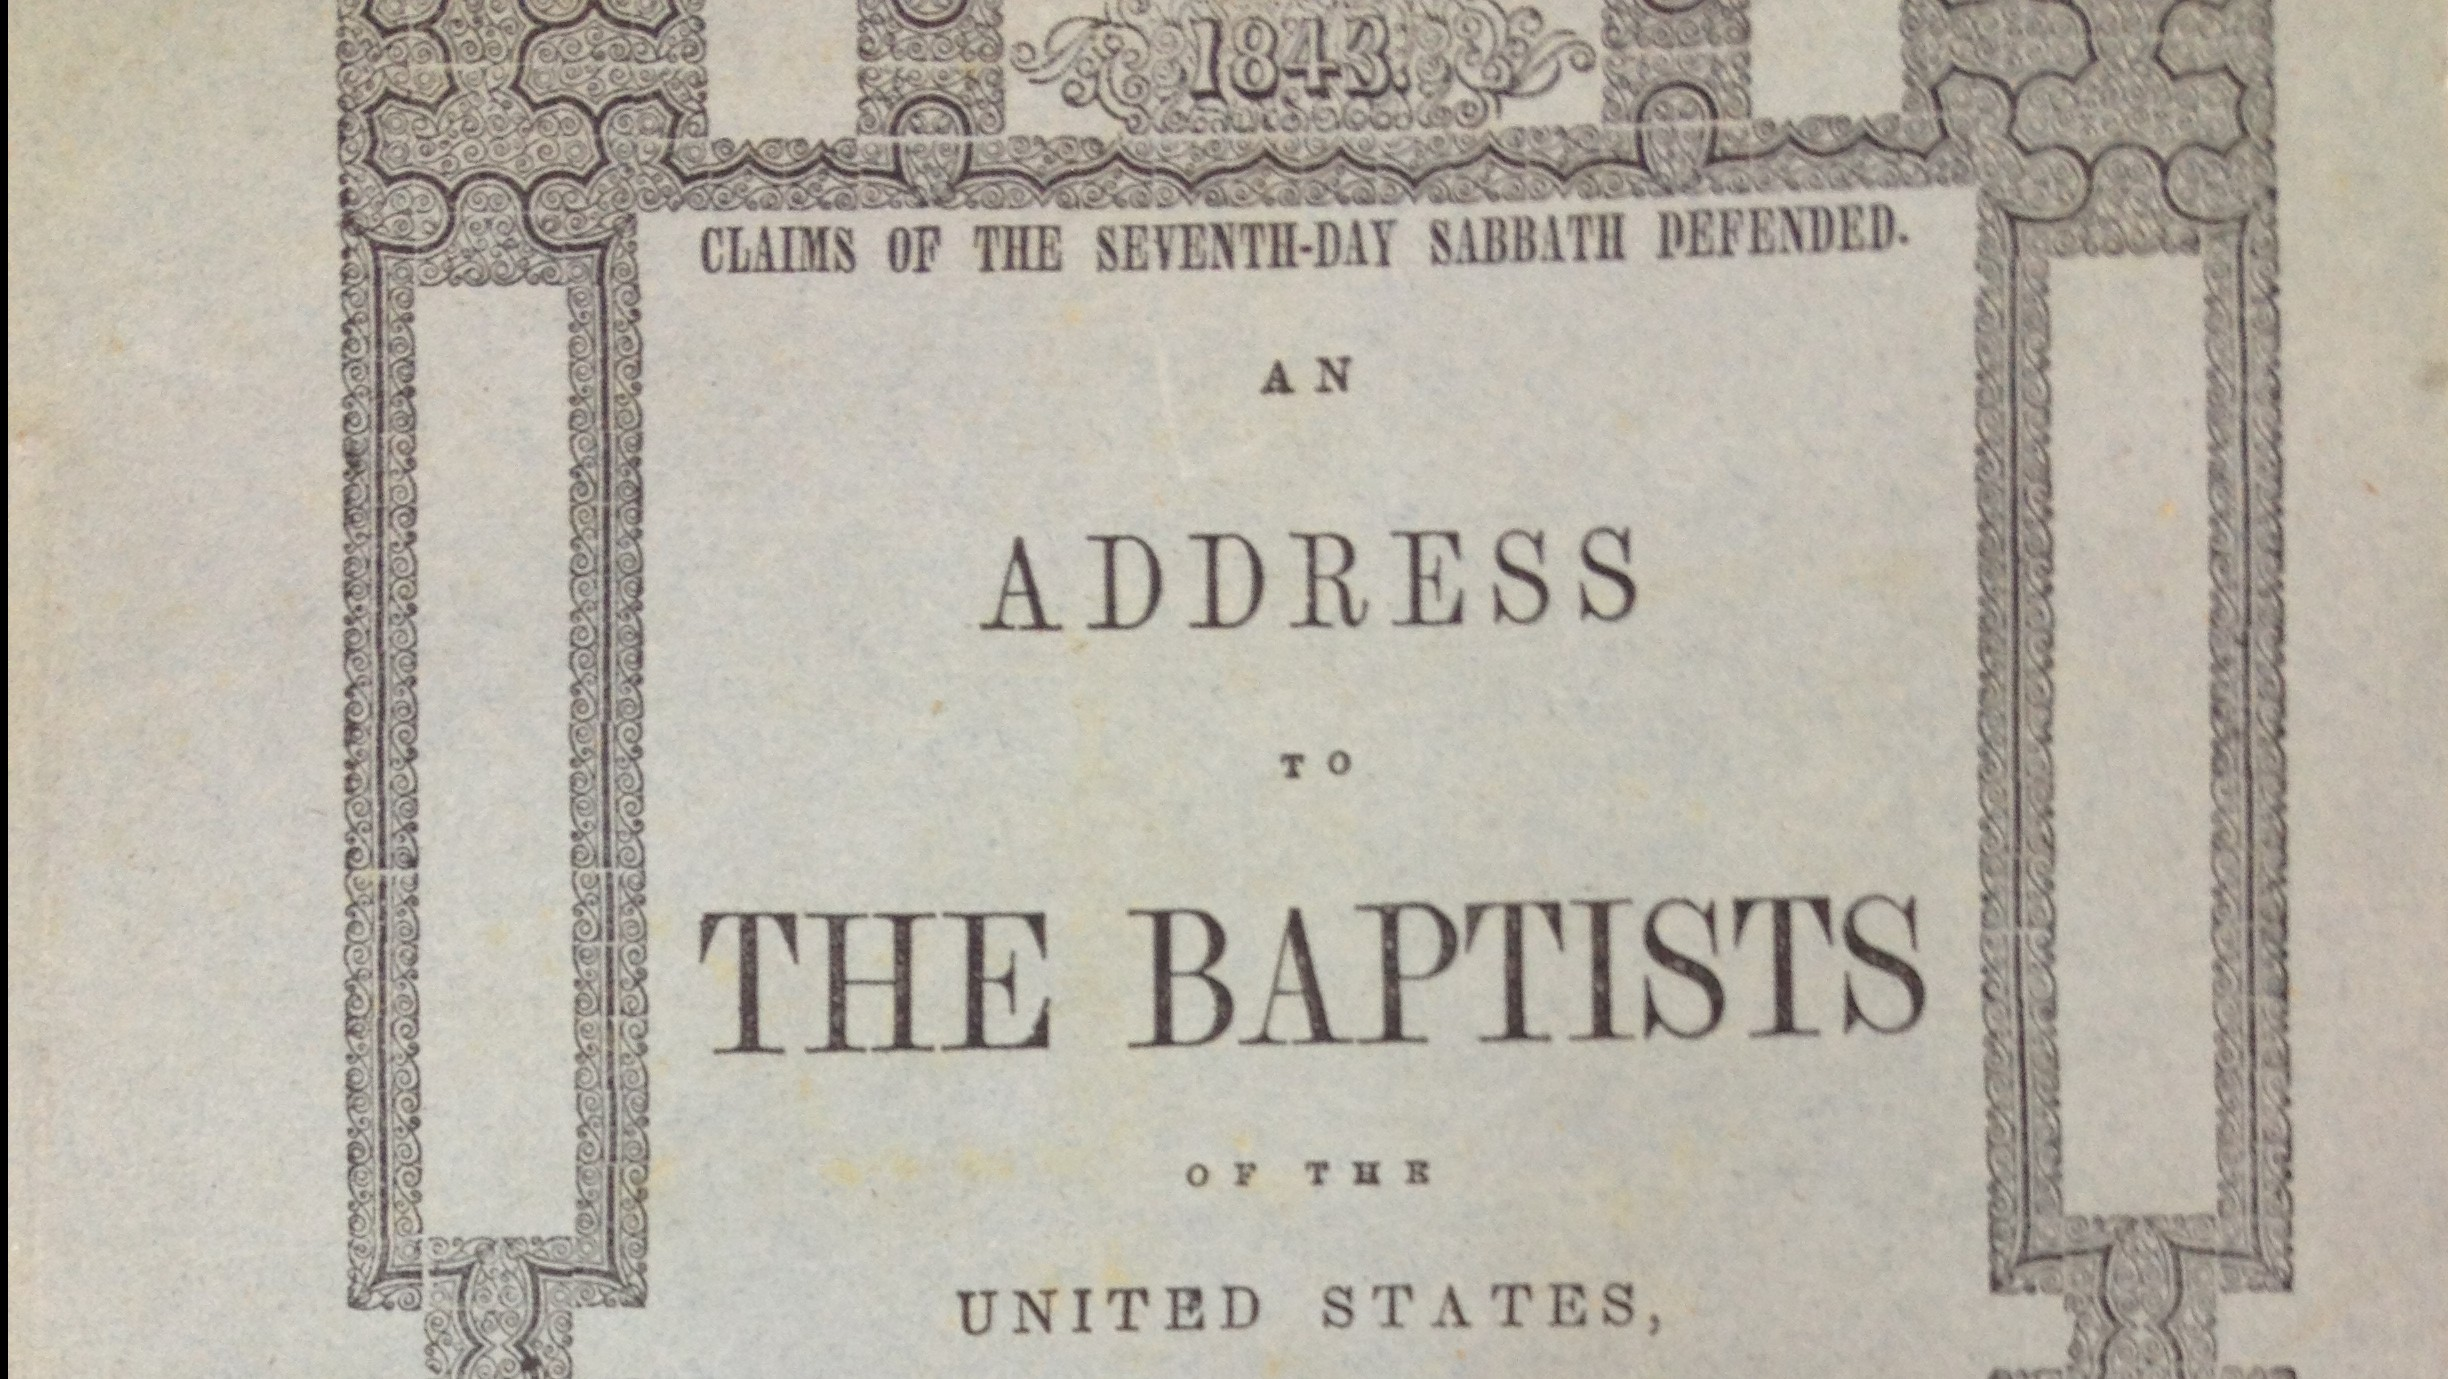 Letter to the Baptists, 1843